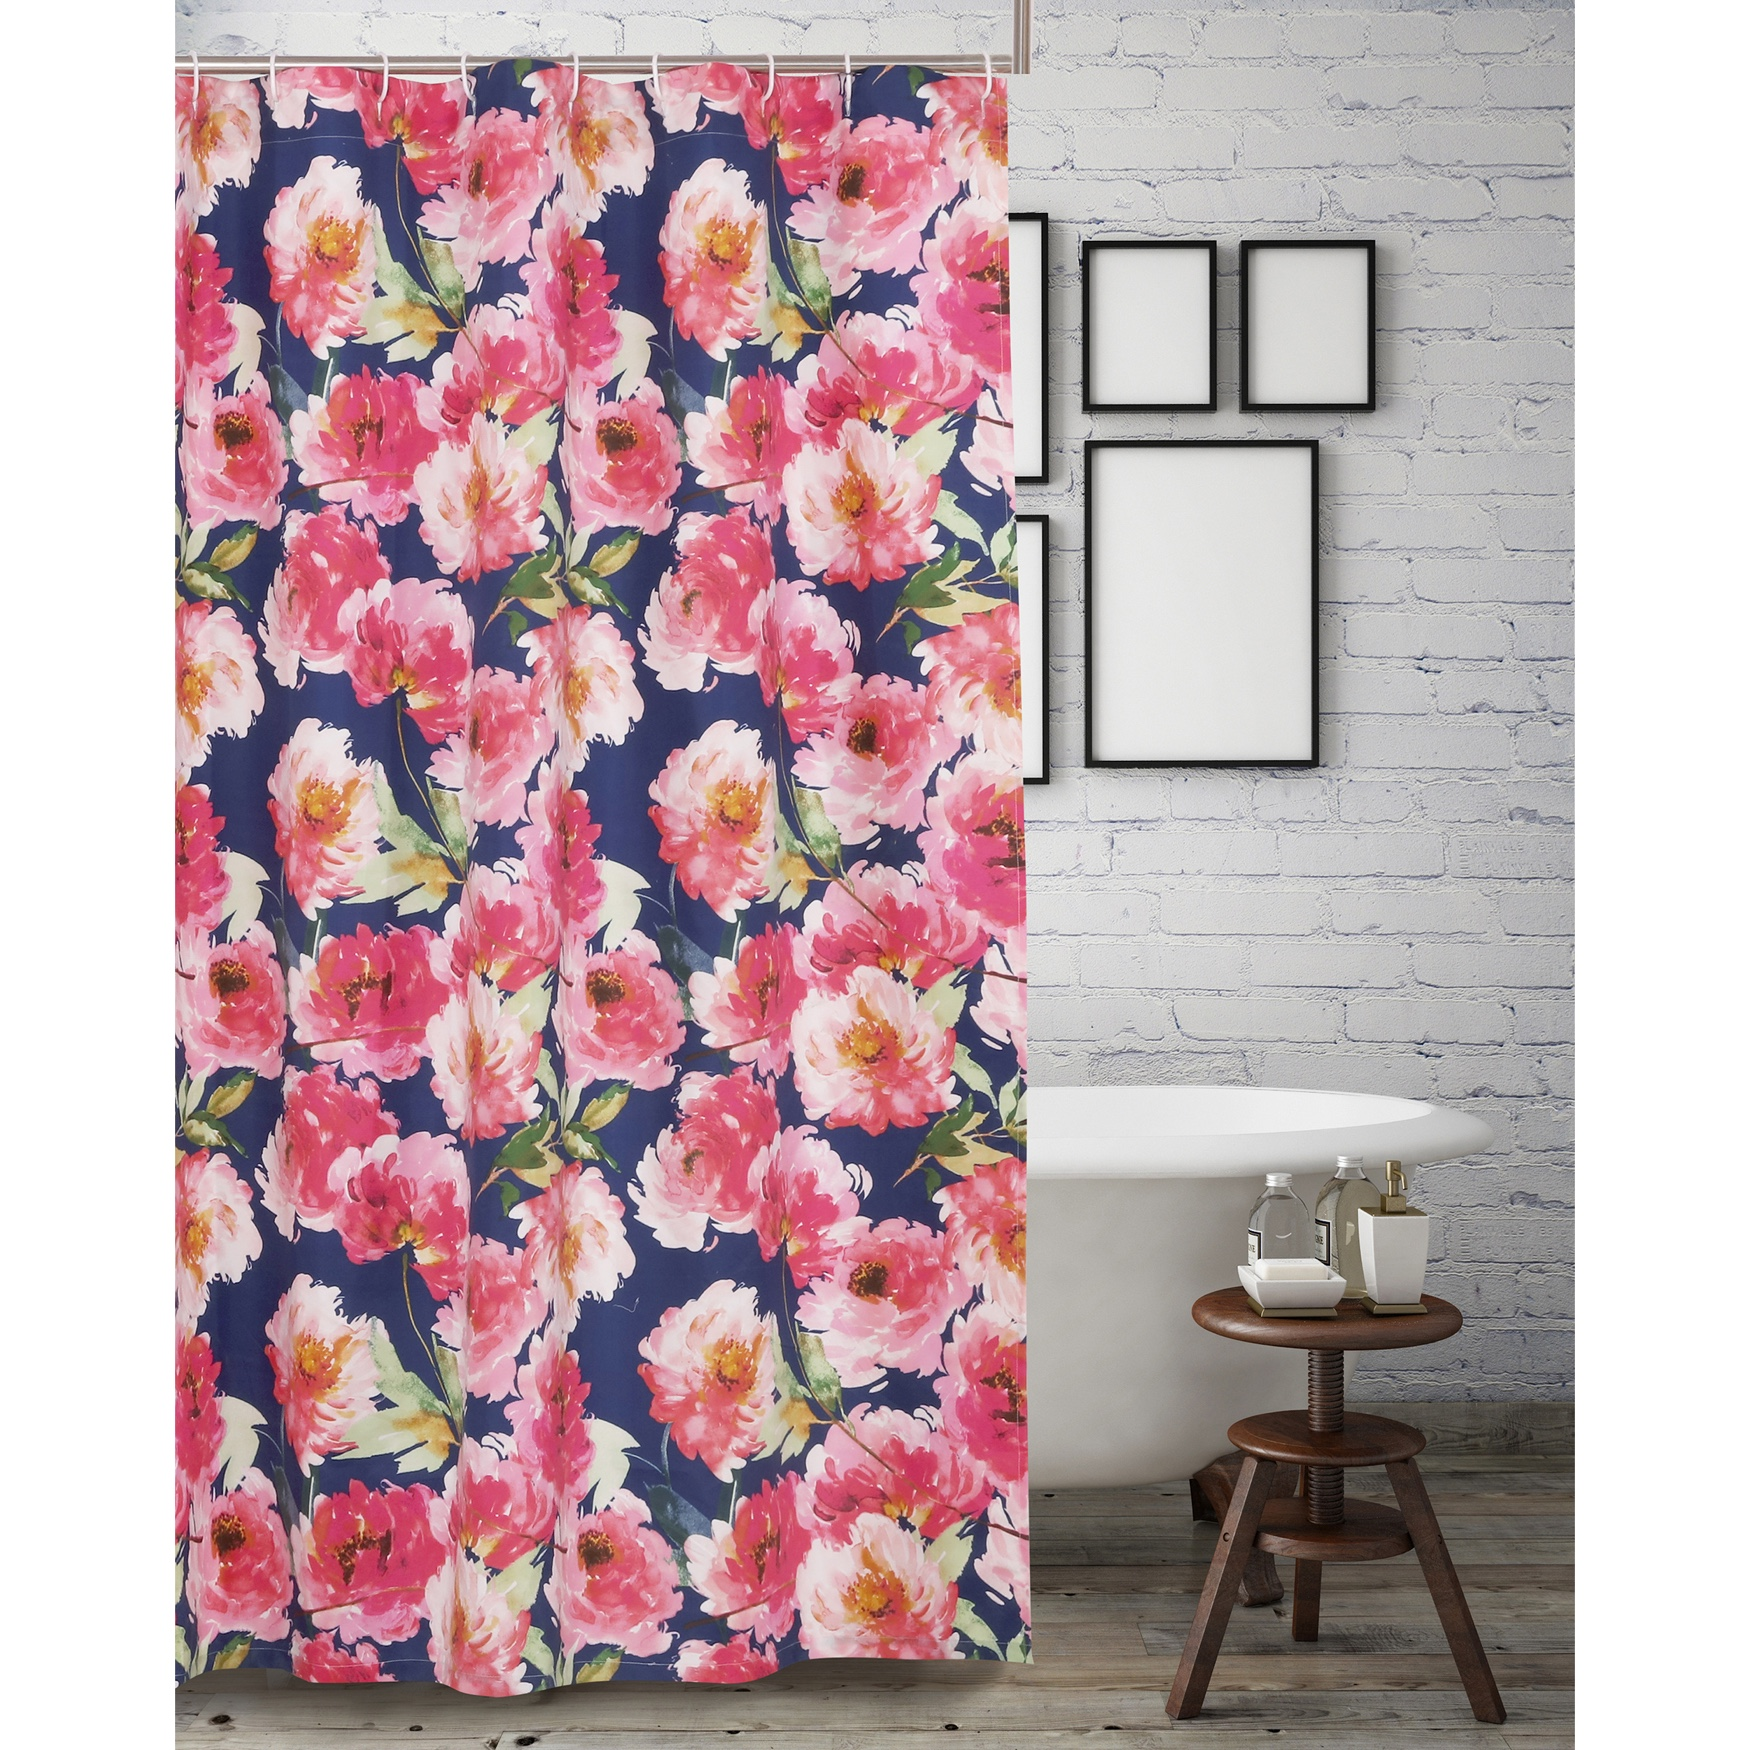 Peony Posy Navy Shower Curtain by Barefoot Bungalow, NAVY